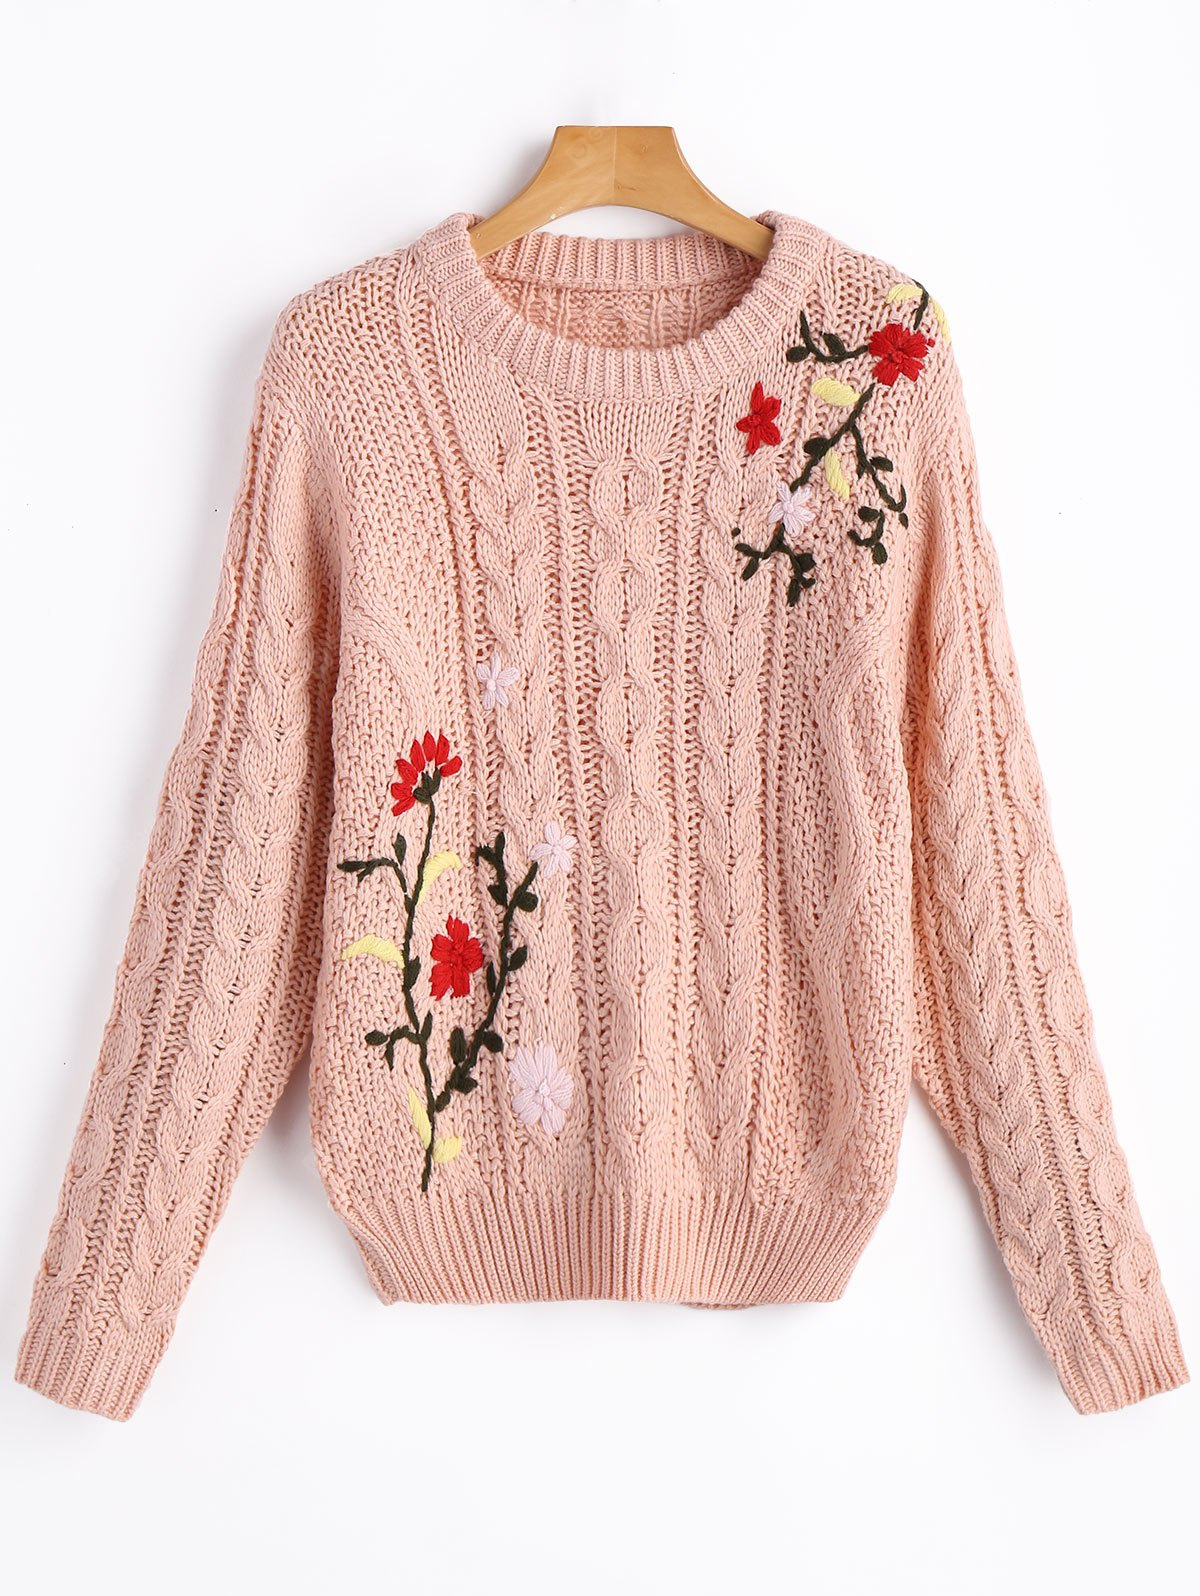 Chunky Jacquard Cable Knit Sweater